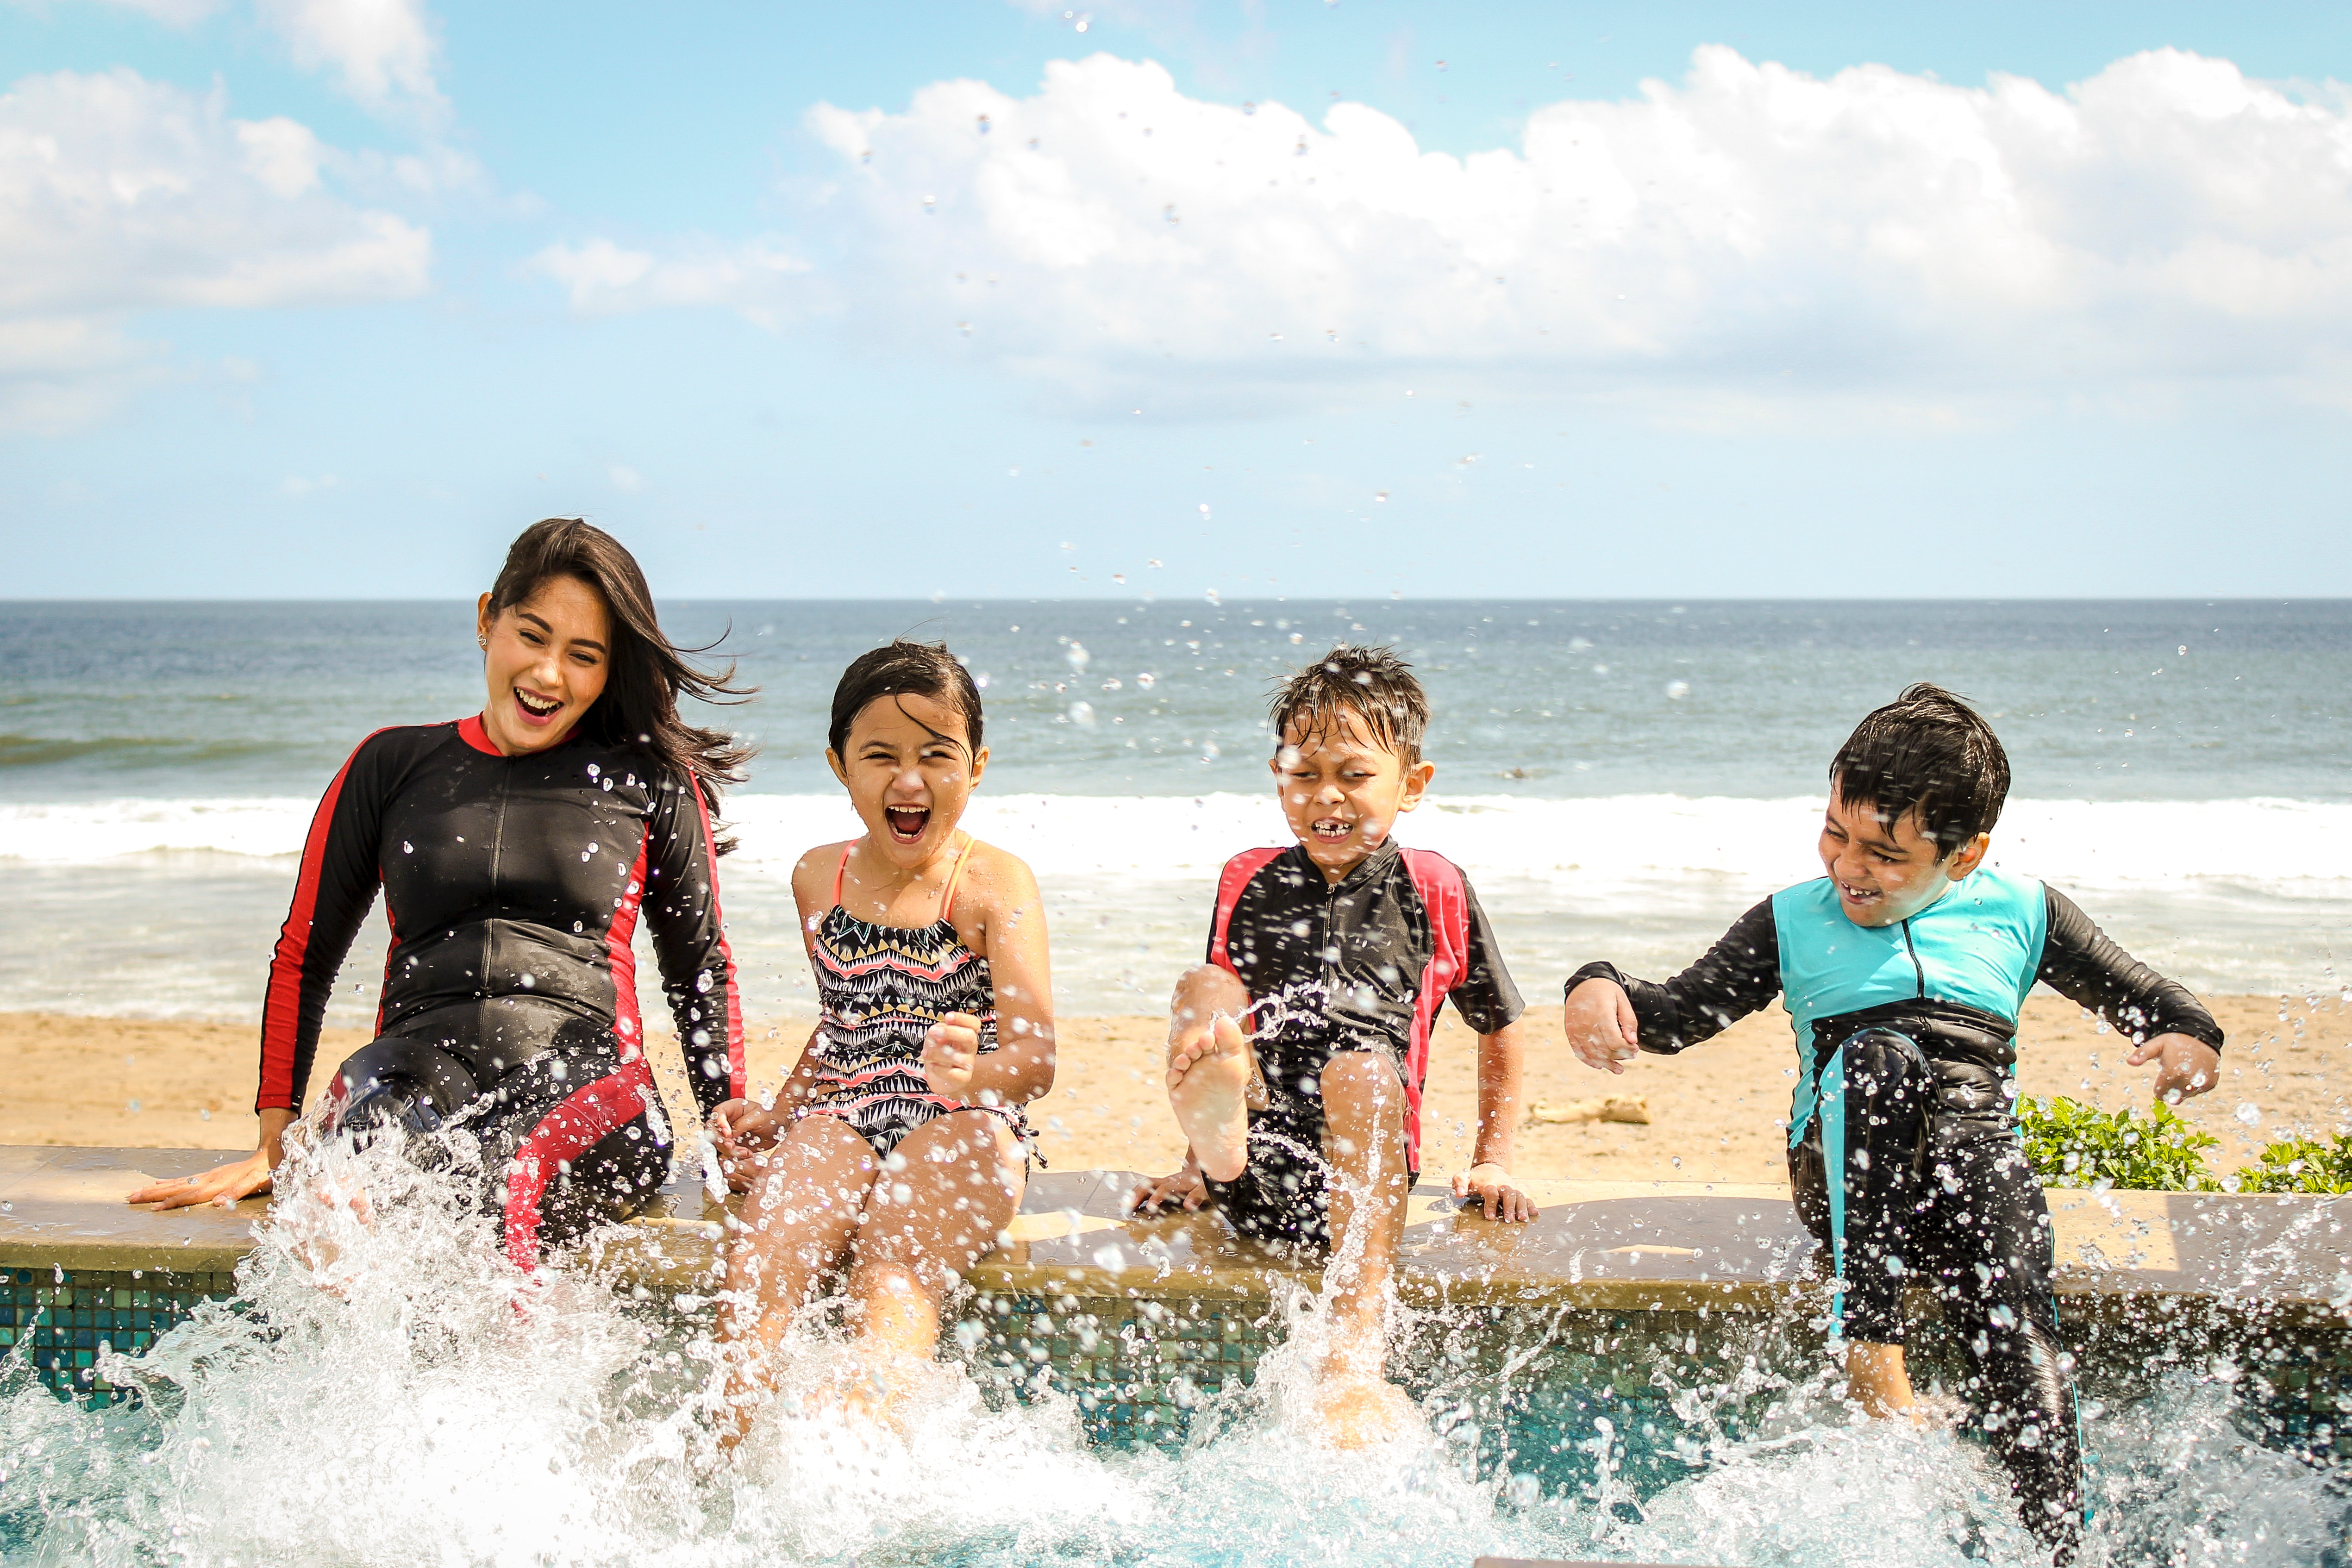 A woman and there children sit at the edge of a beachfront pool, splashing their legs in the pool water.